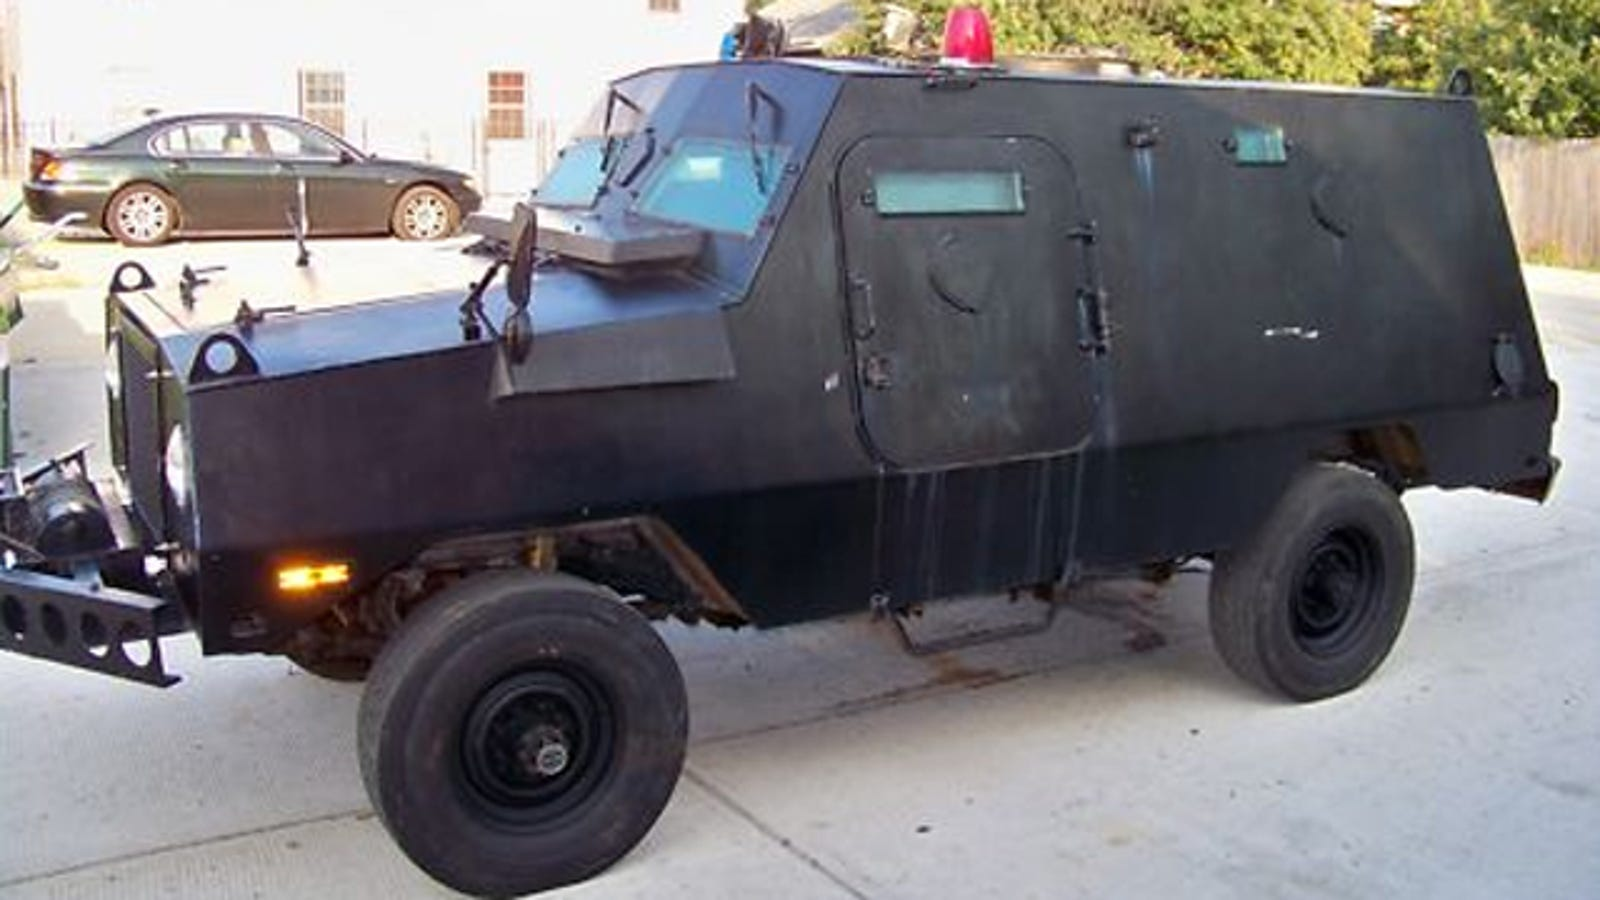 Armored Truck For Sale Craigslist >> Nine Reasons To Purchase This Awesome Armored Vehicle Currently On Ebay